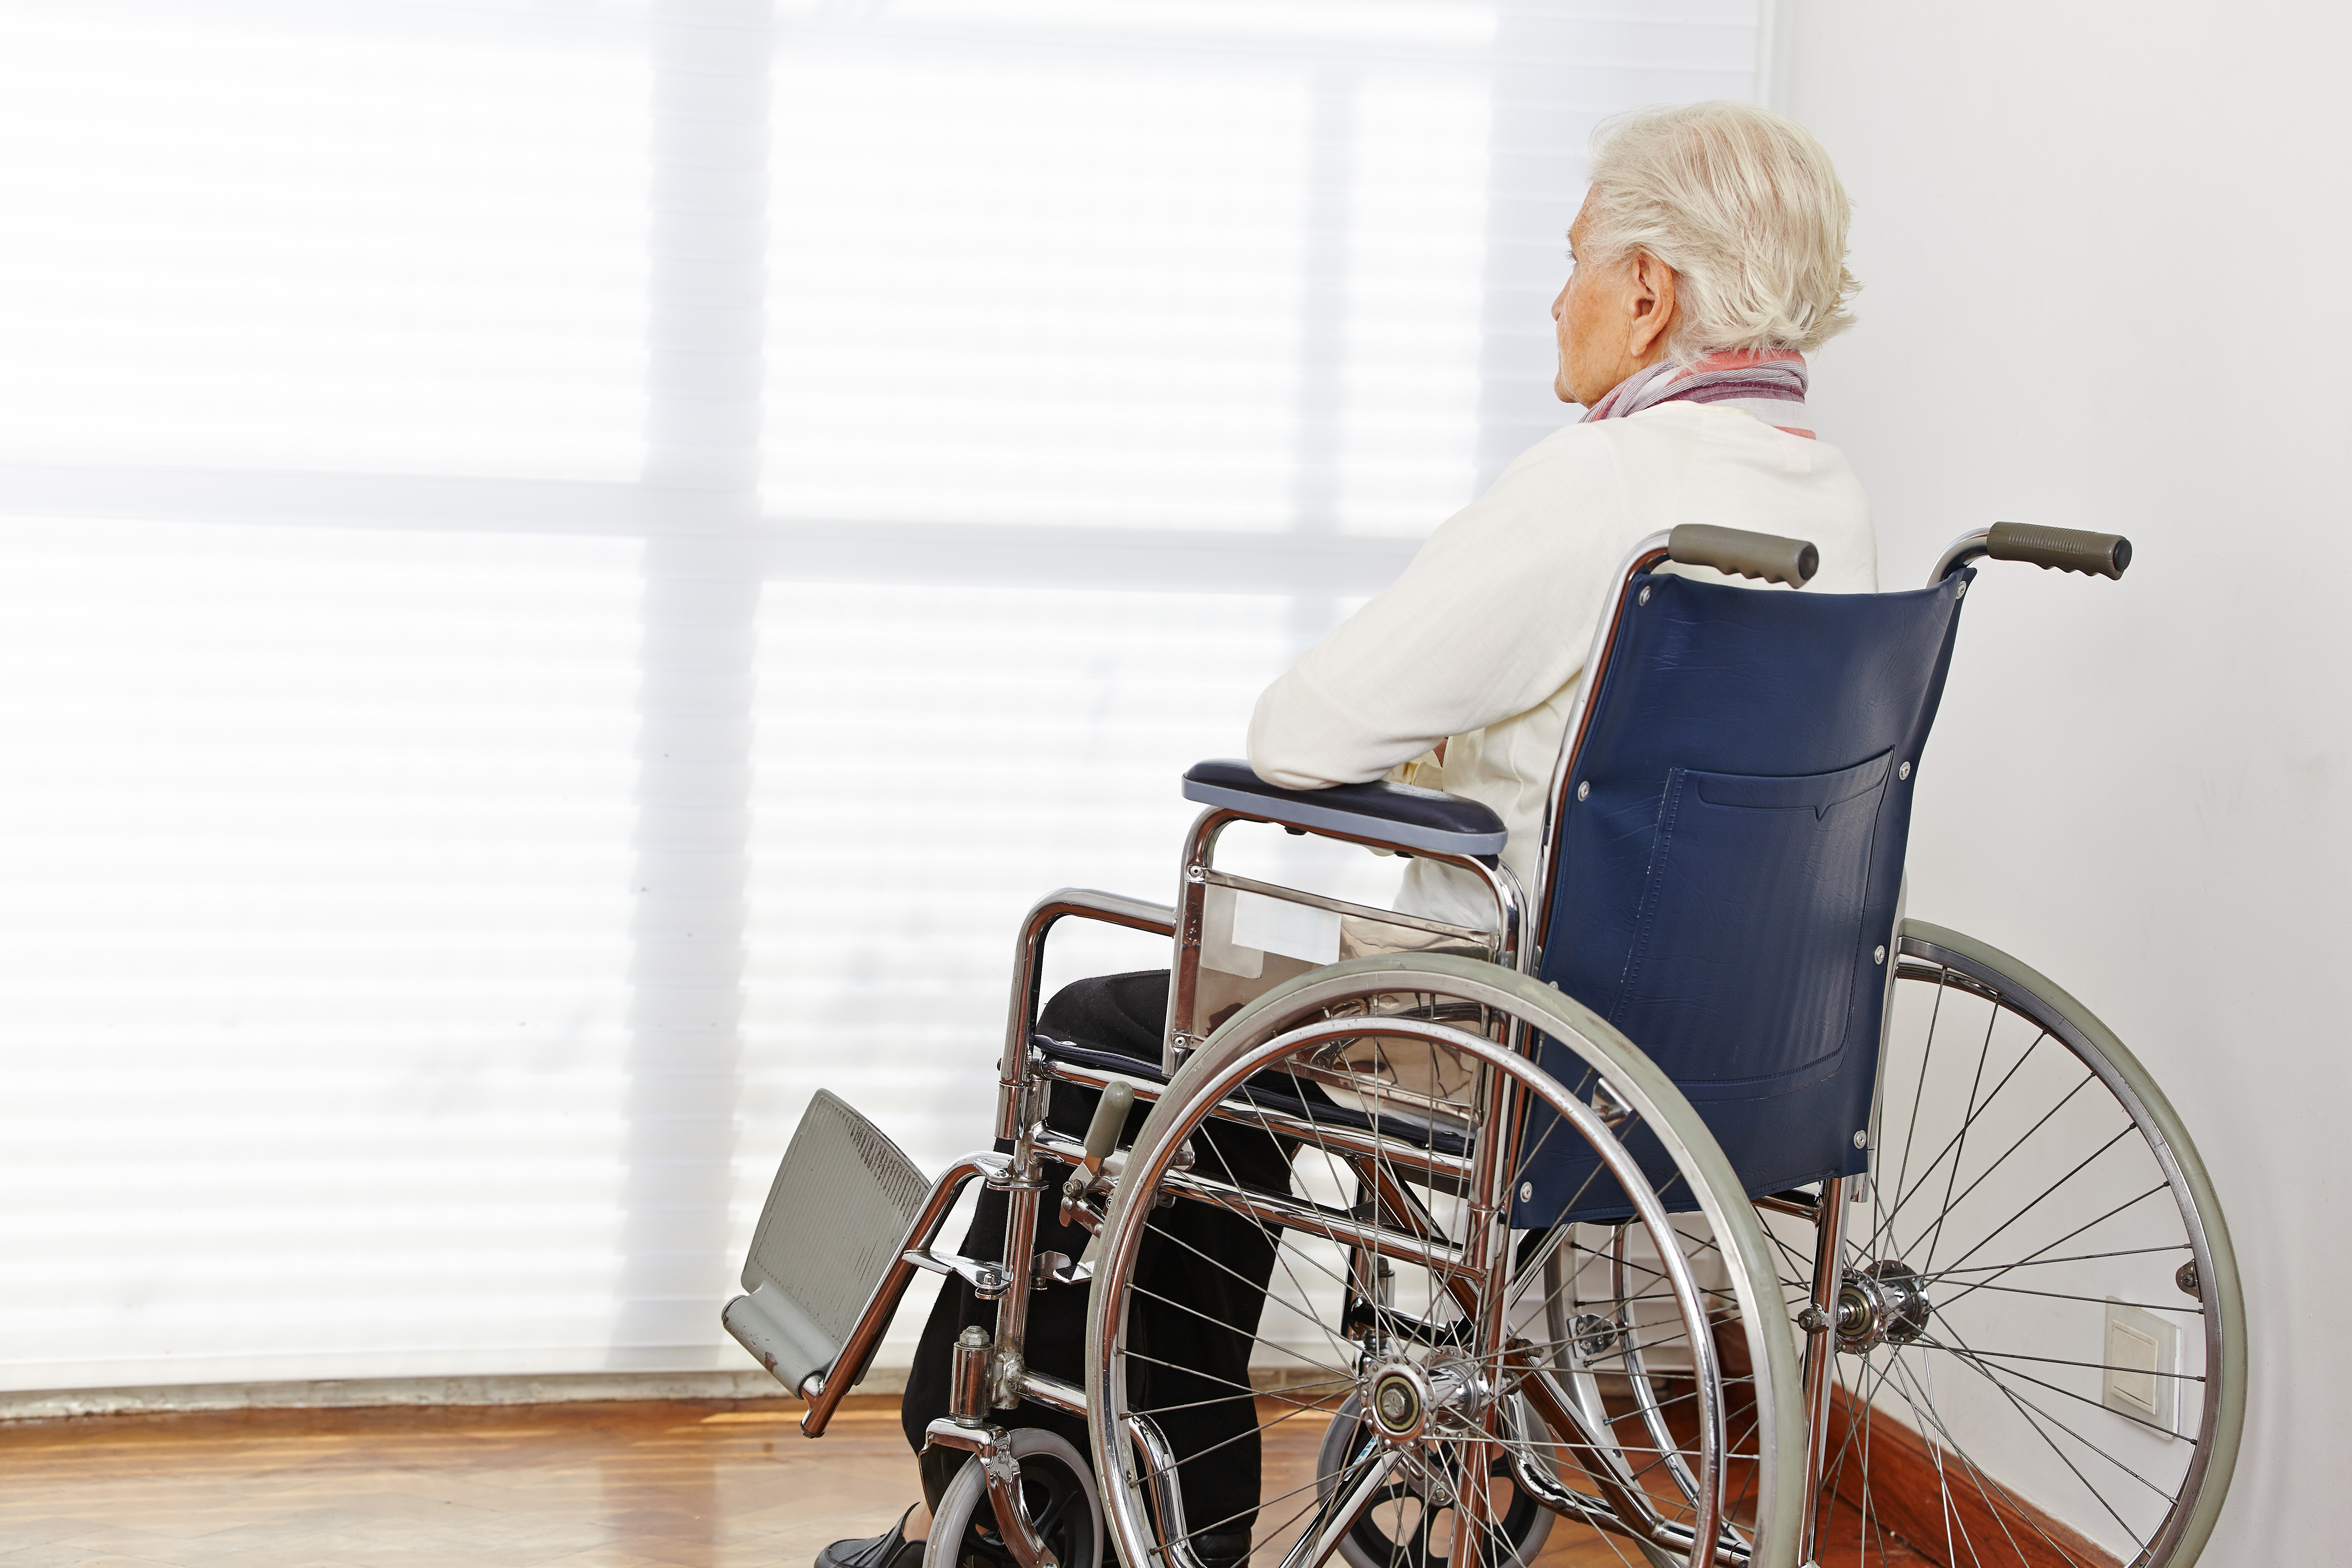 Gaps Found in Scrutiny of Assisted Living Homes